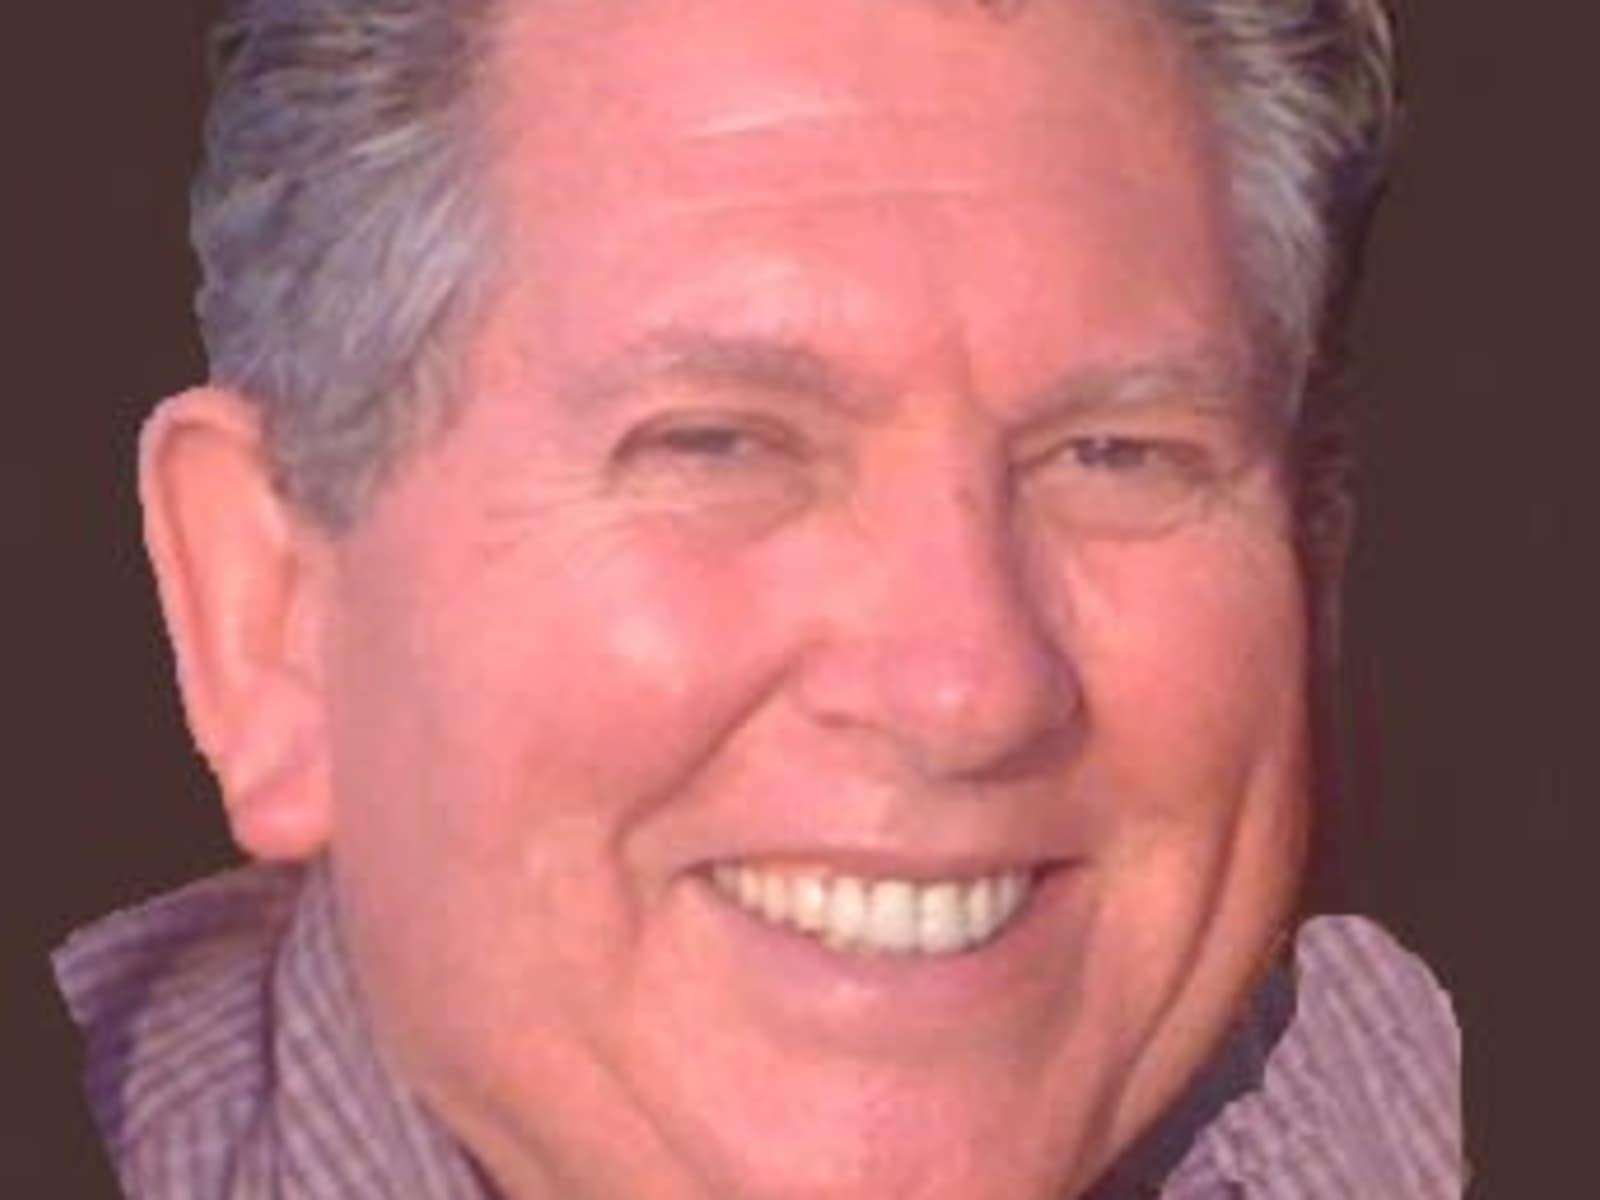 Bob from Tennessee City, Tennessee, United States